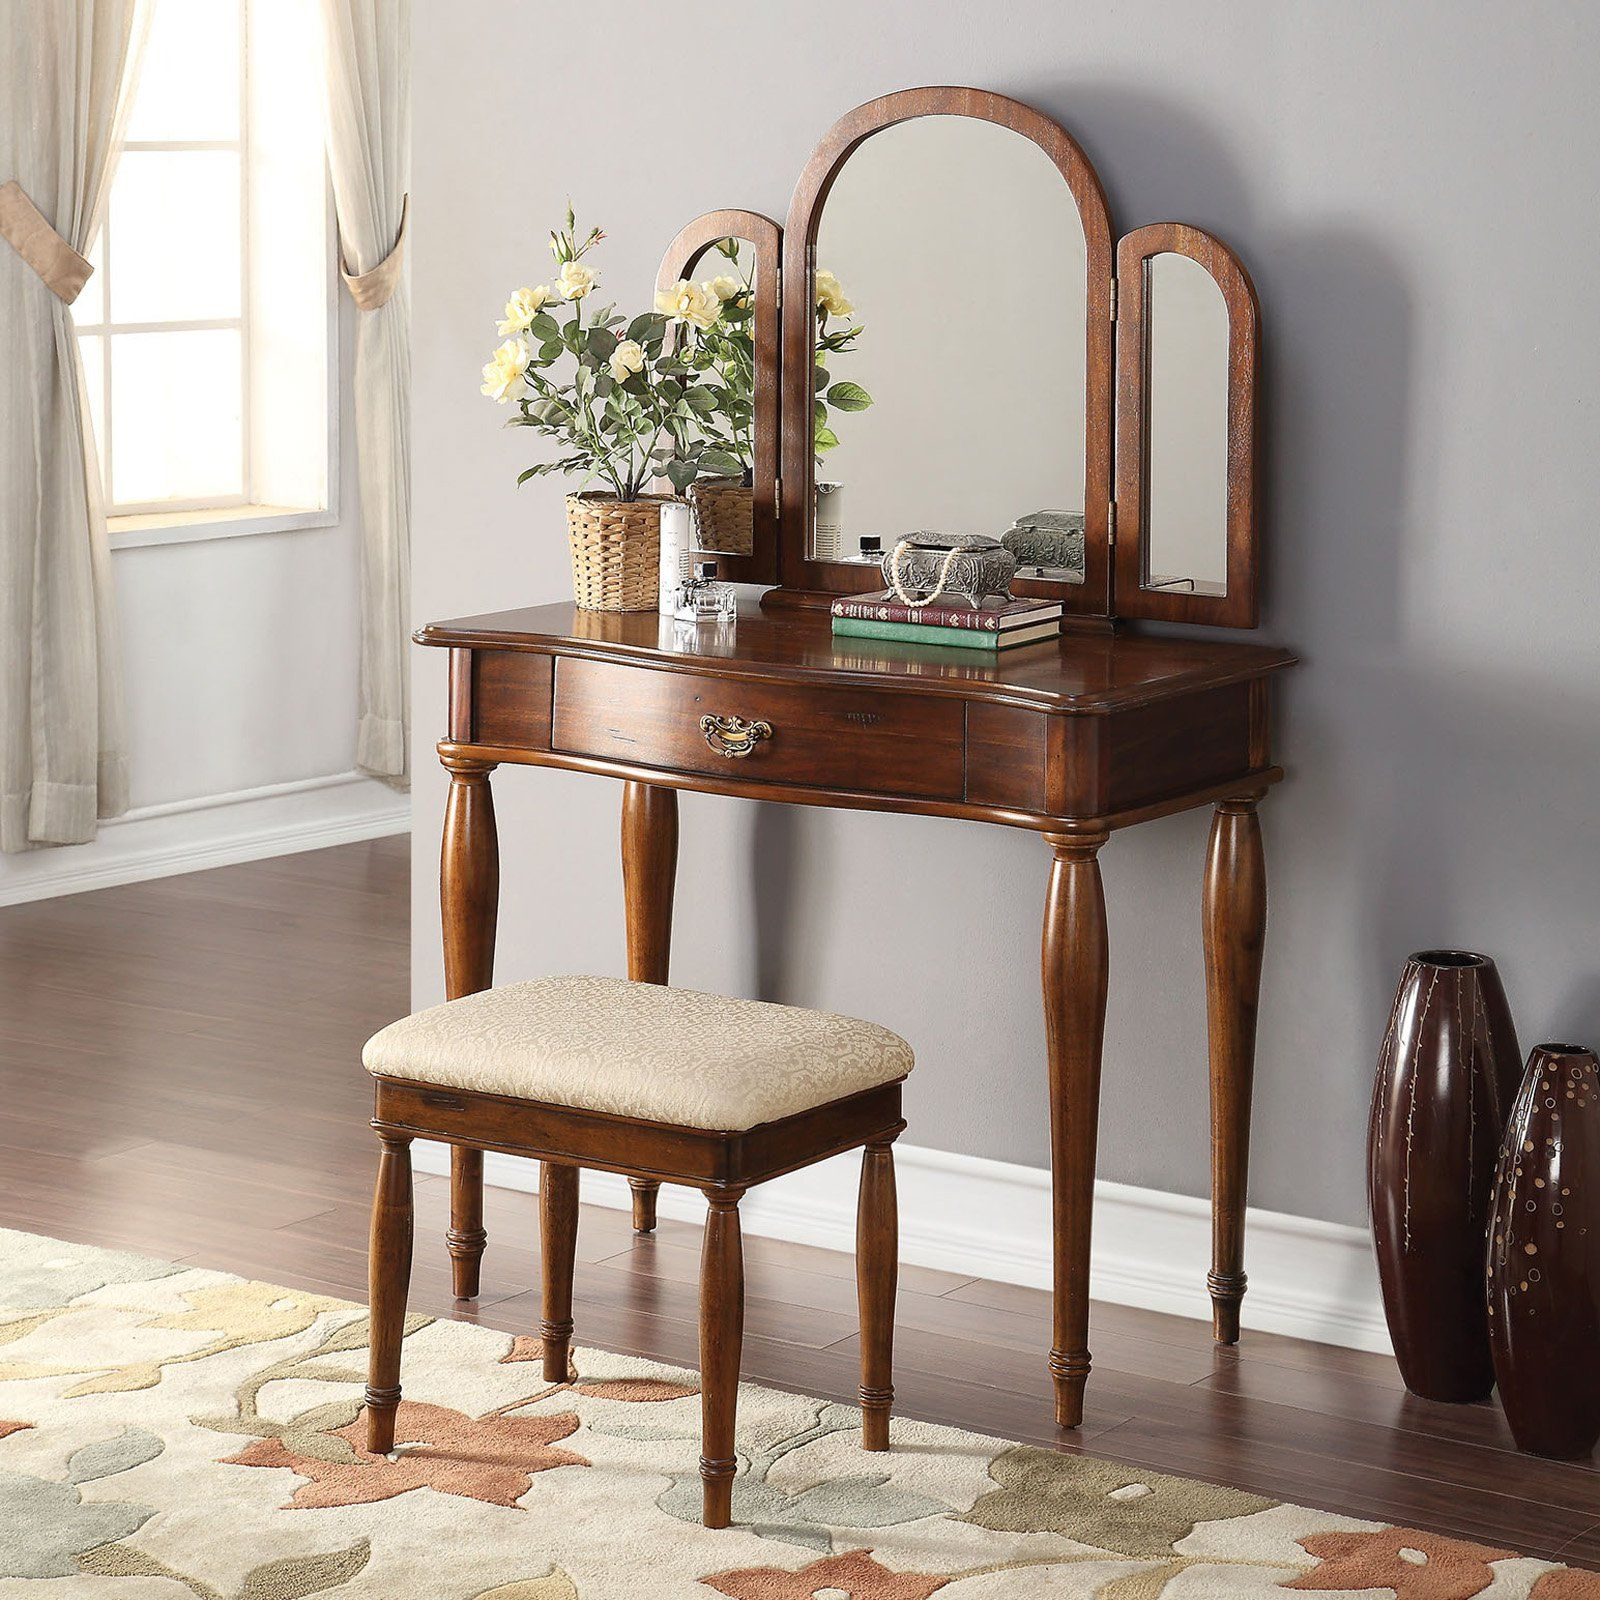 Acme furniture burke vanity set products pinterest